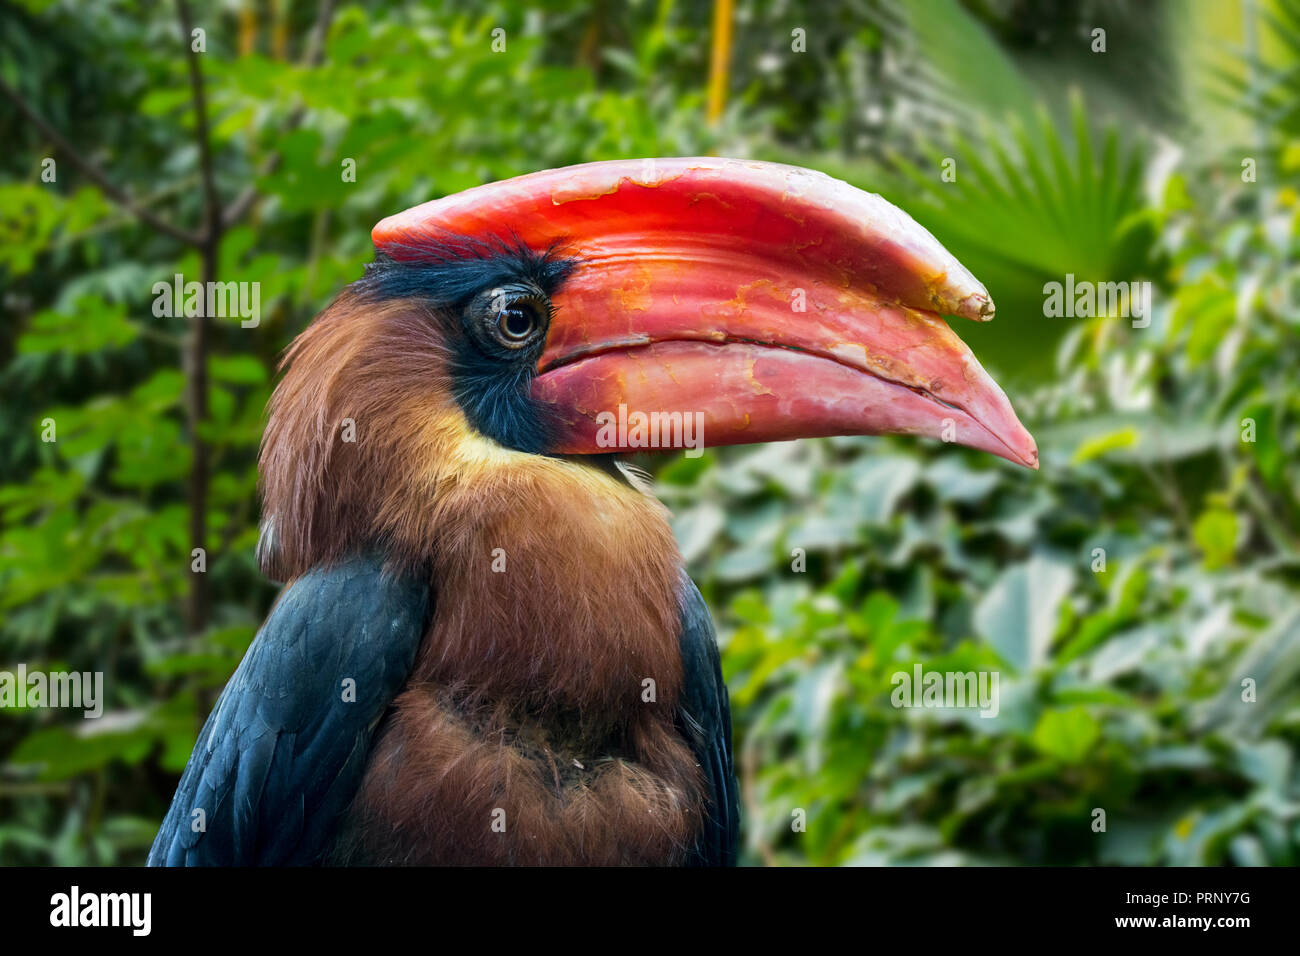 Rufous hornbill / Philippine hornbill / kalaw (Buceros hydrocorax) endemic to the Philippines - Stock Image